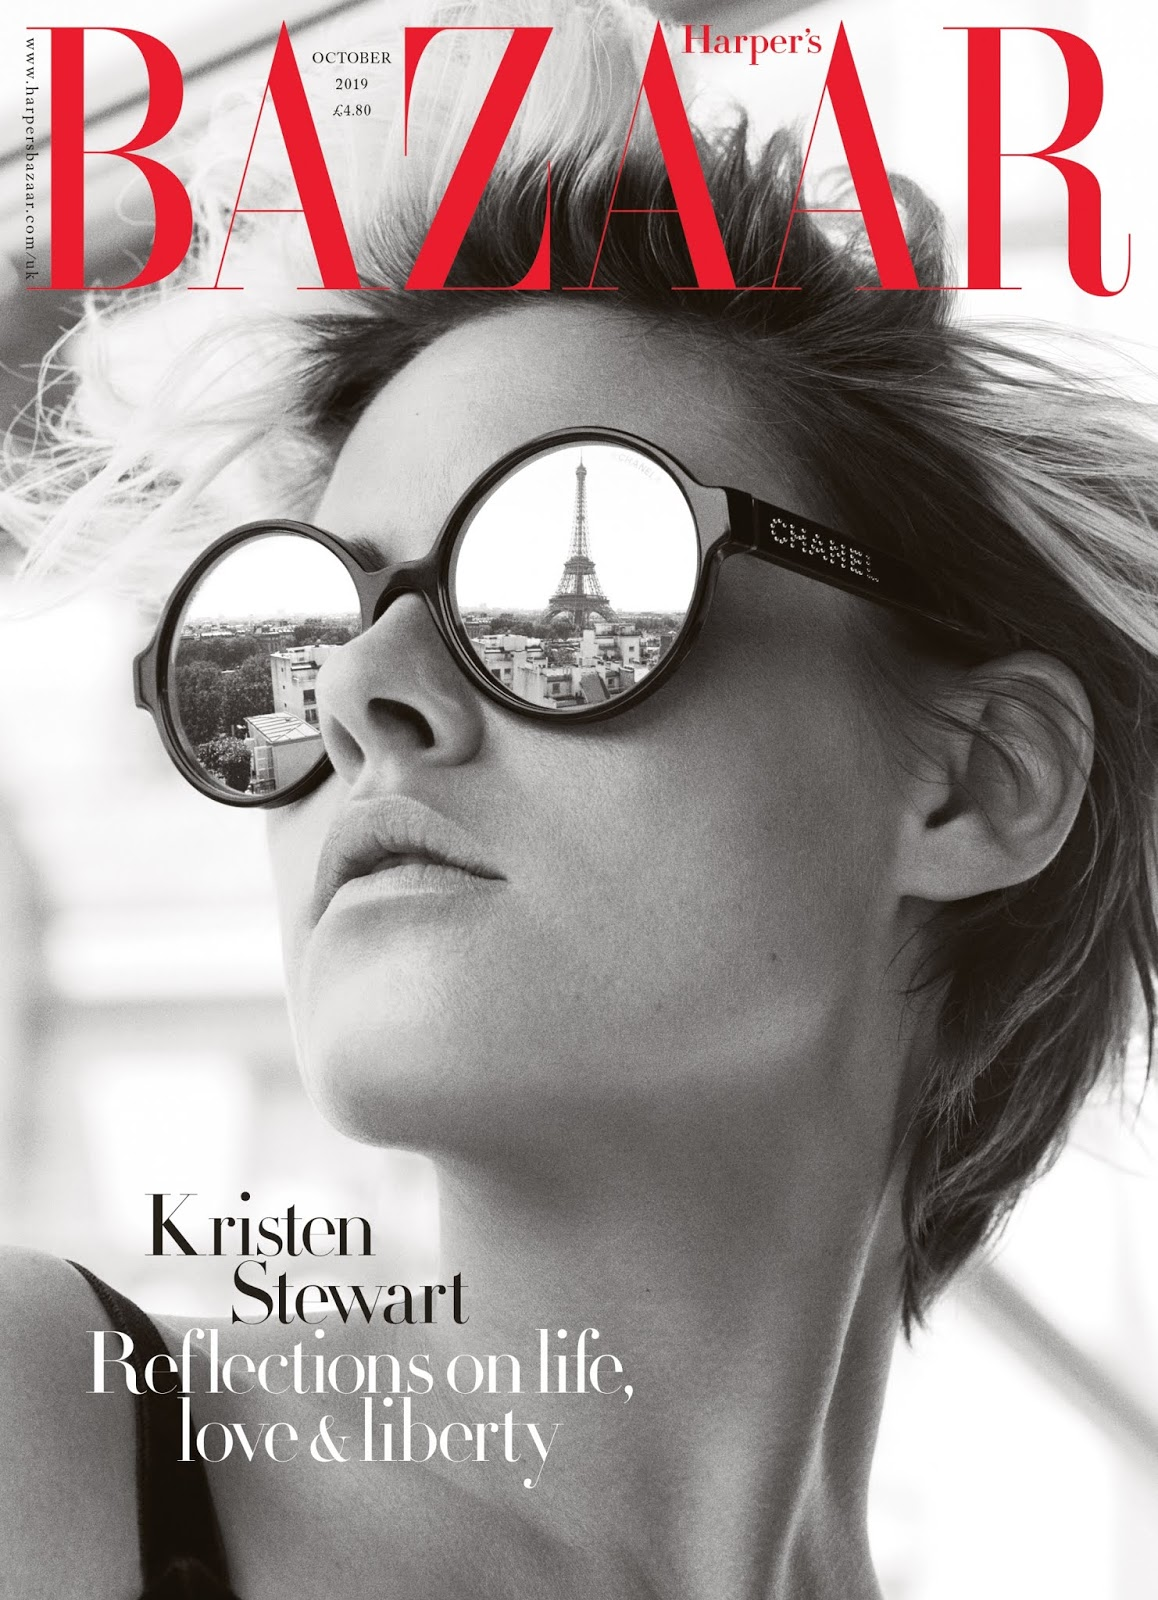 Kristen Stewart by Alexi Lubomirski for Harpers Bazaar UK October 2019  (2).jpg